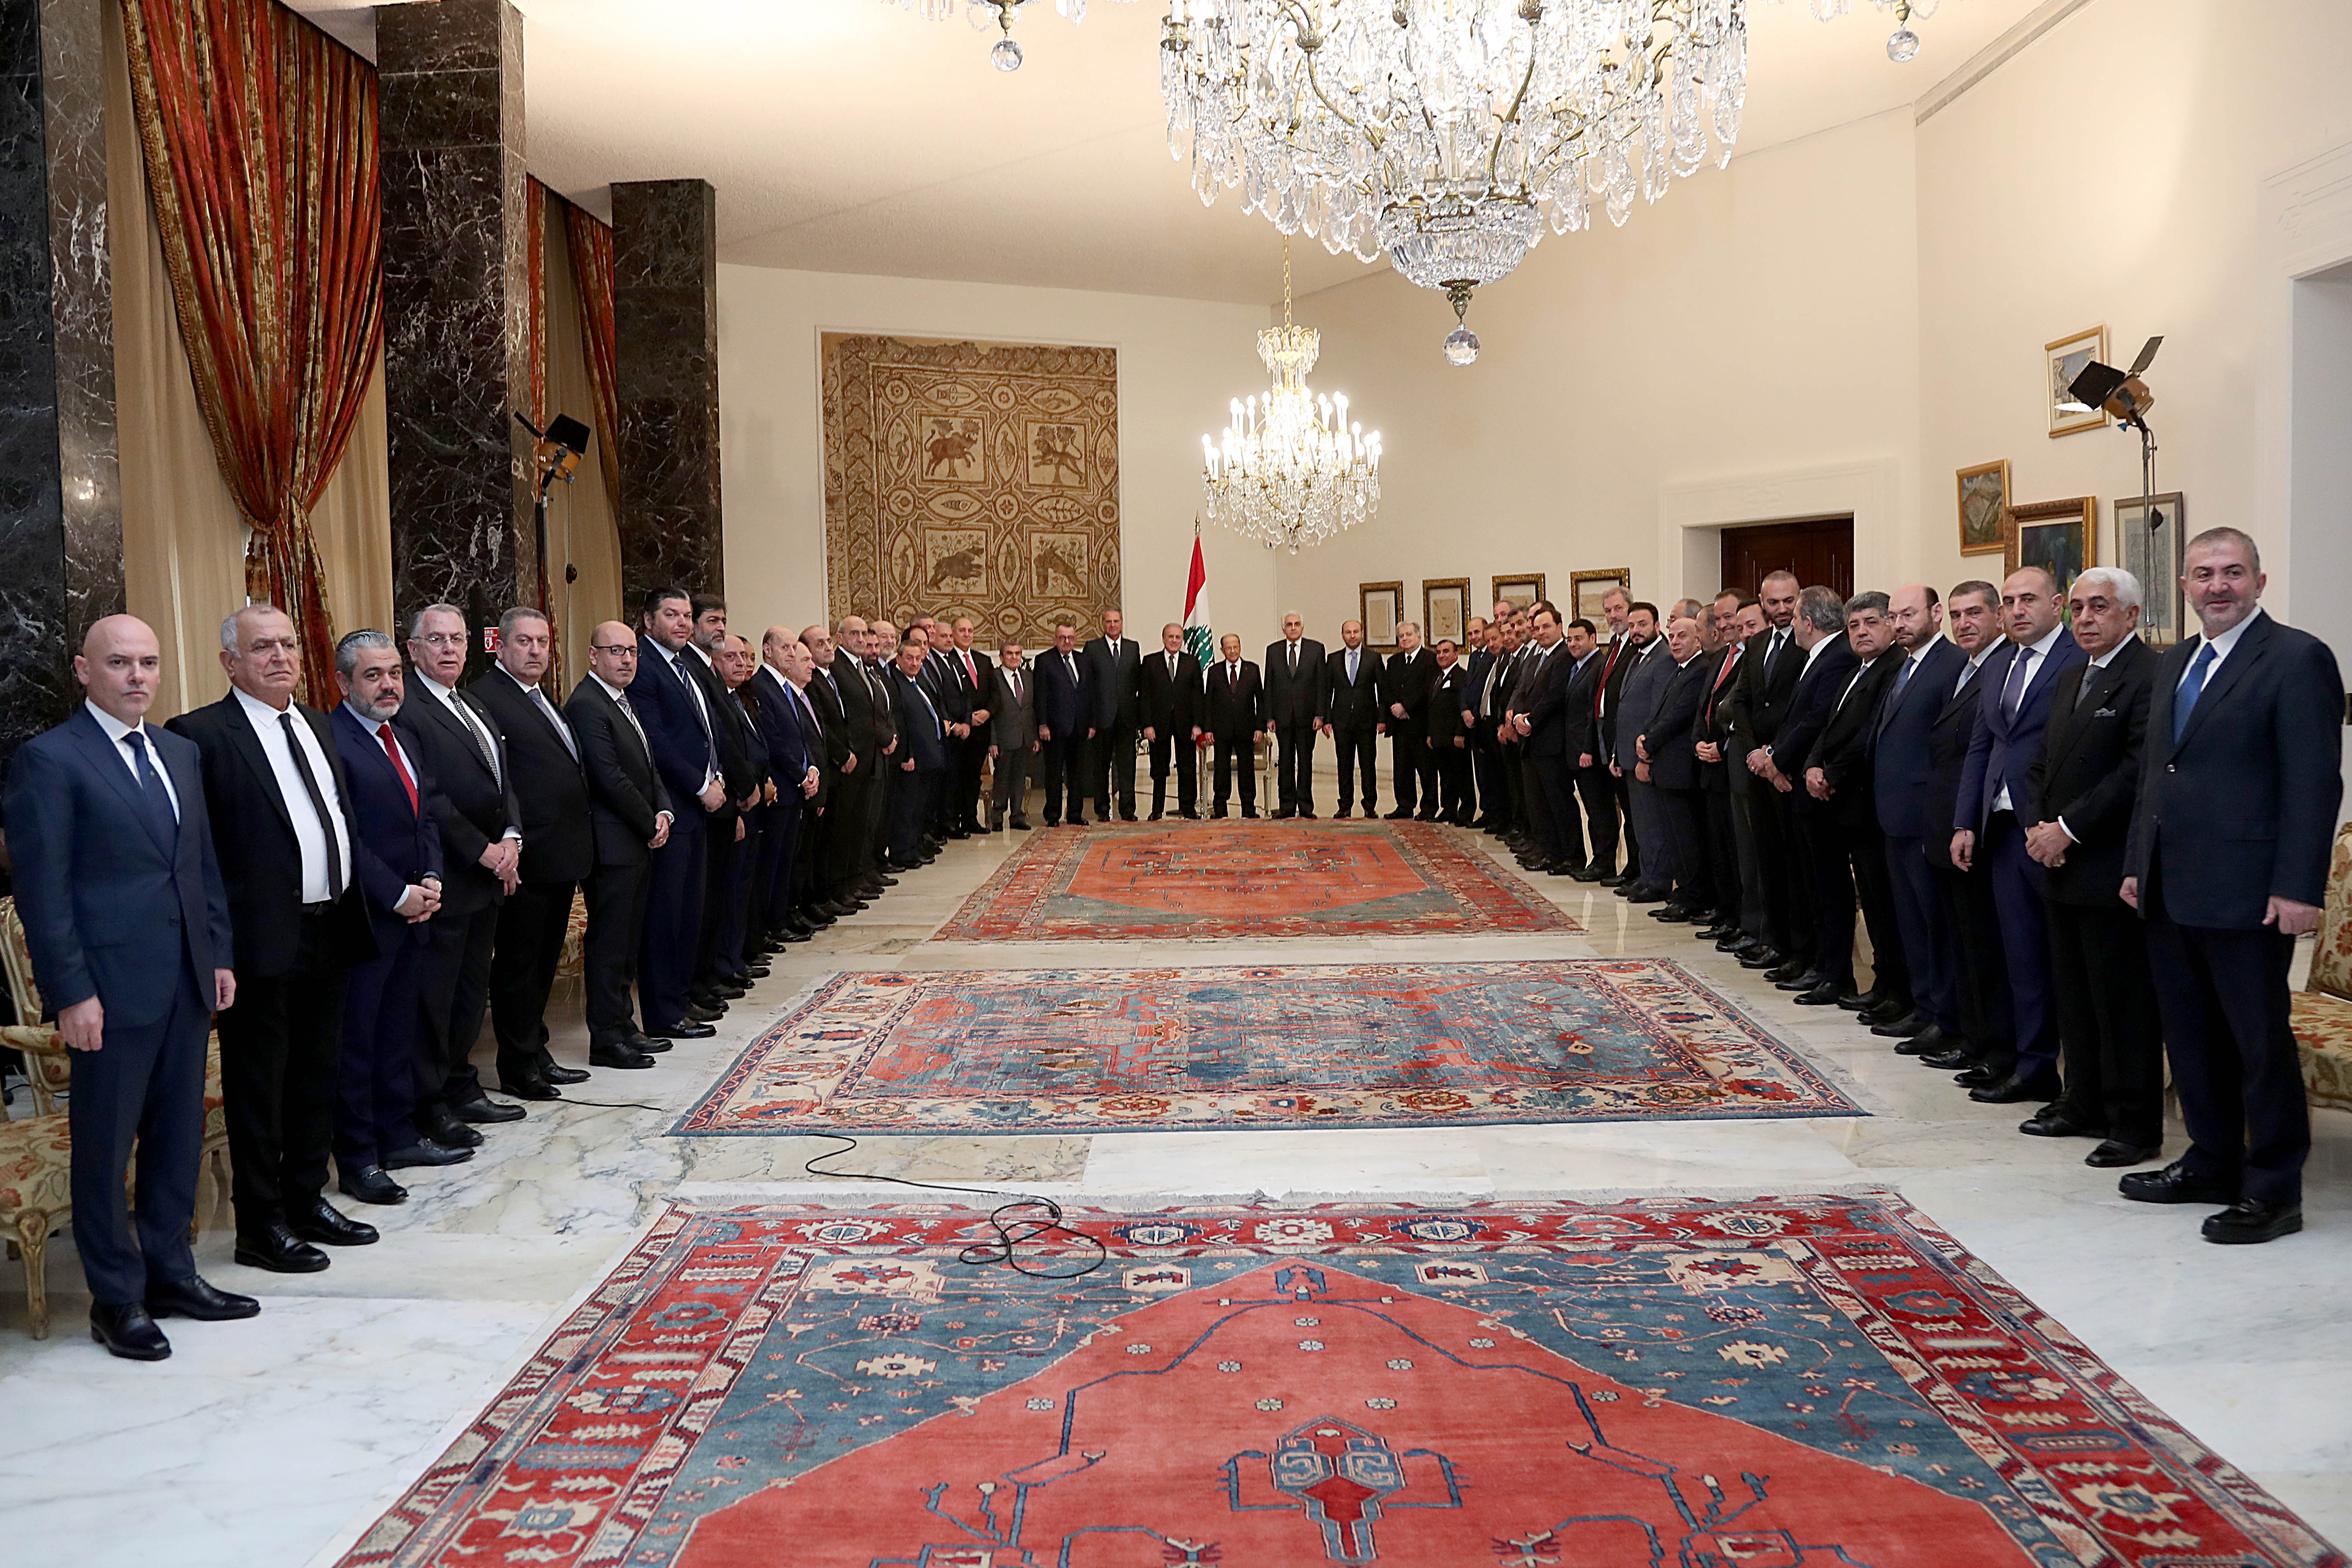 2 - members of the diplomatic corps accredited in Lebanon (2)